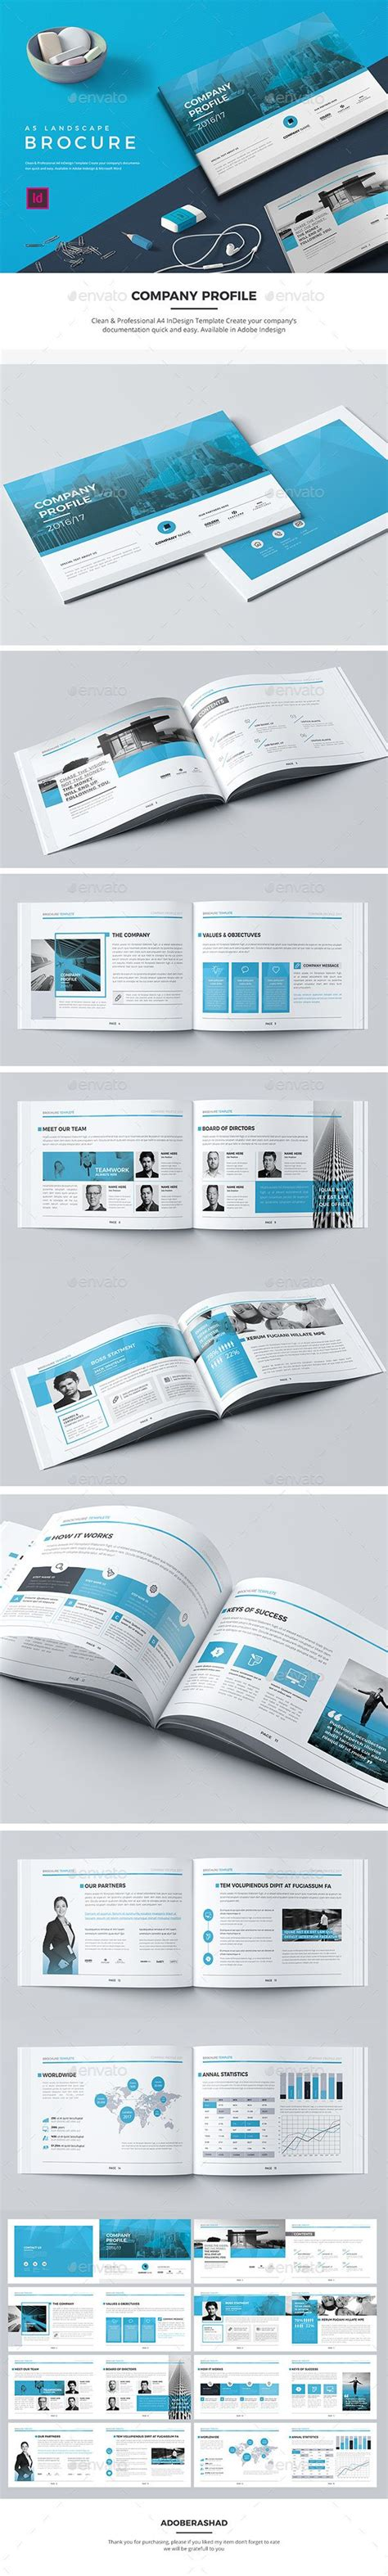 change layout to landscape in indesign a5 landscape company profile indesign indd corporate